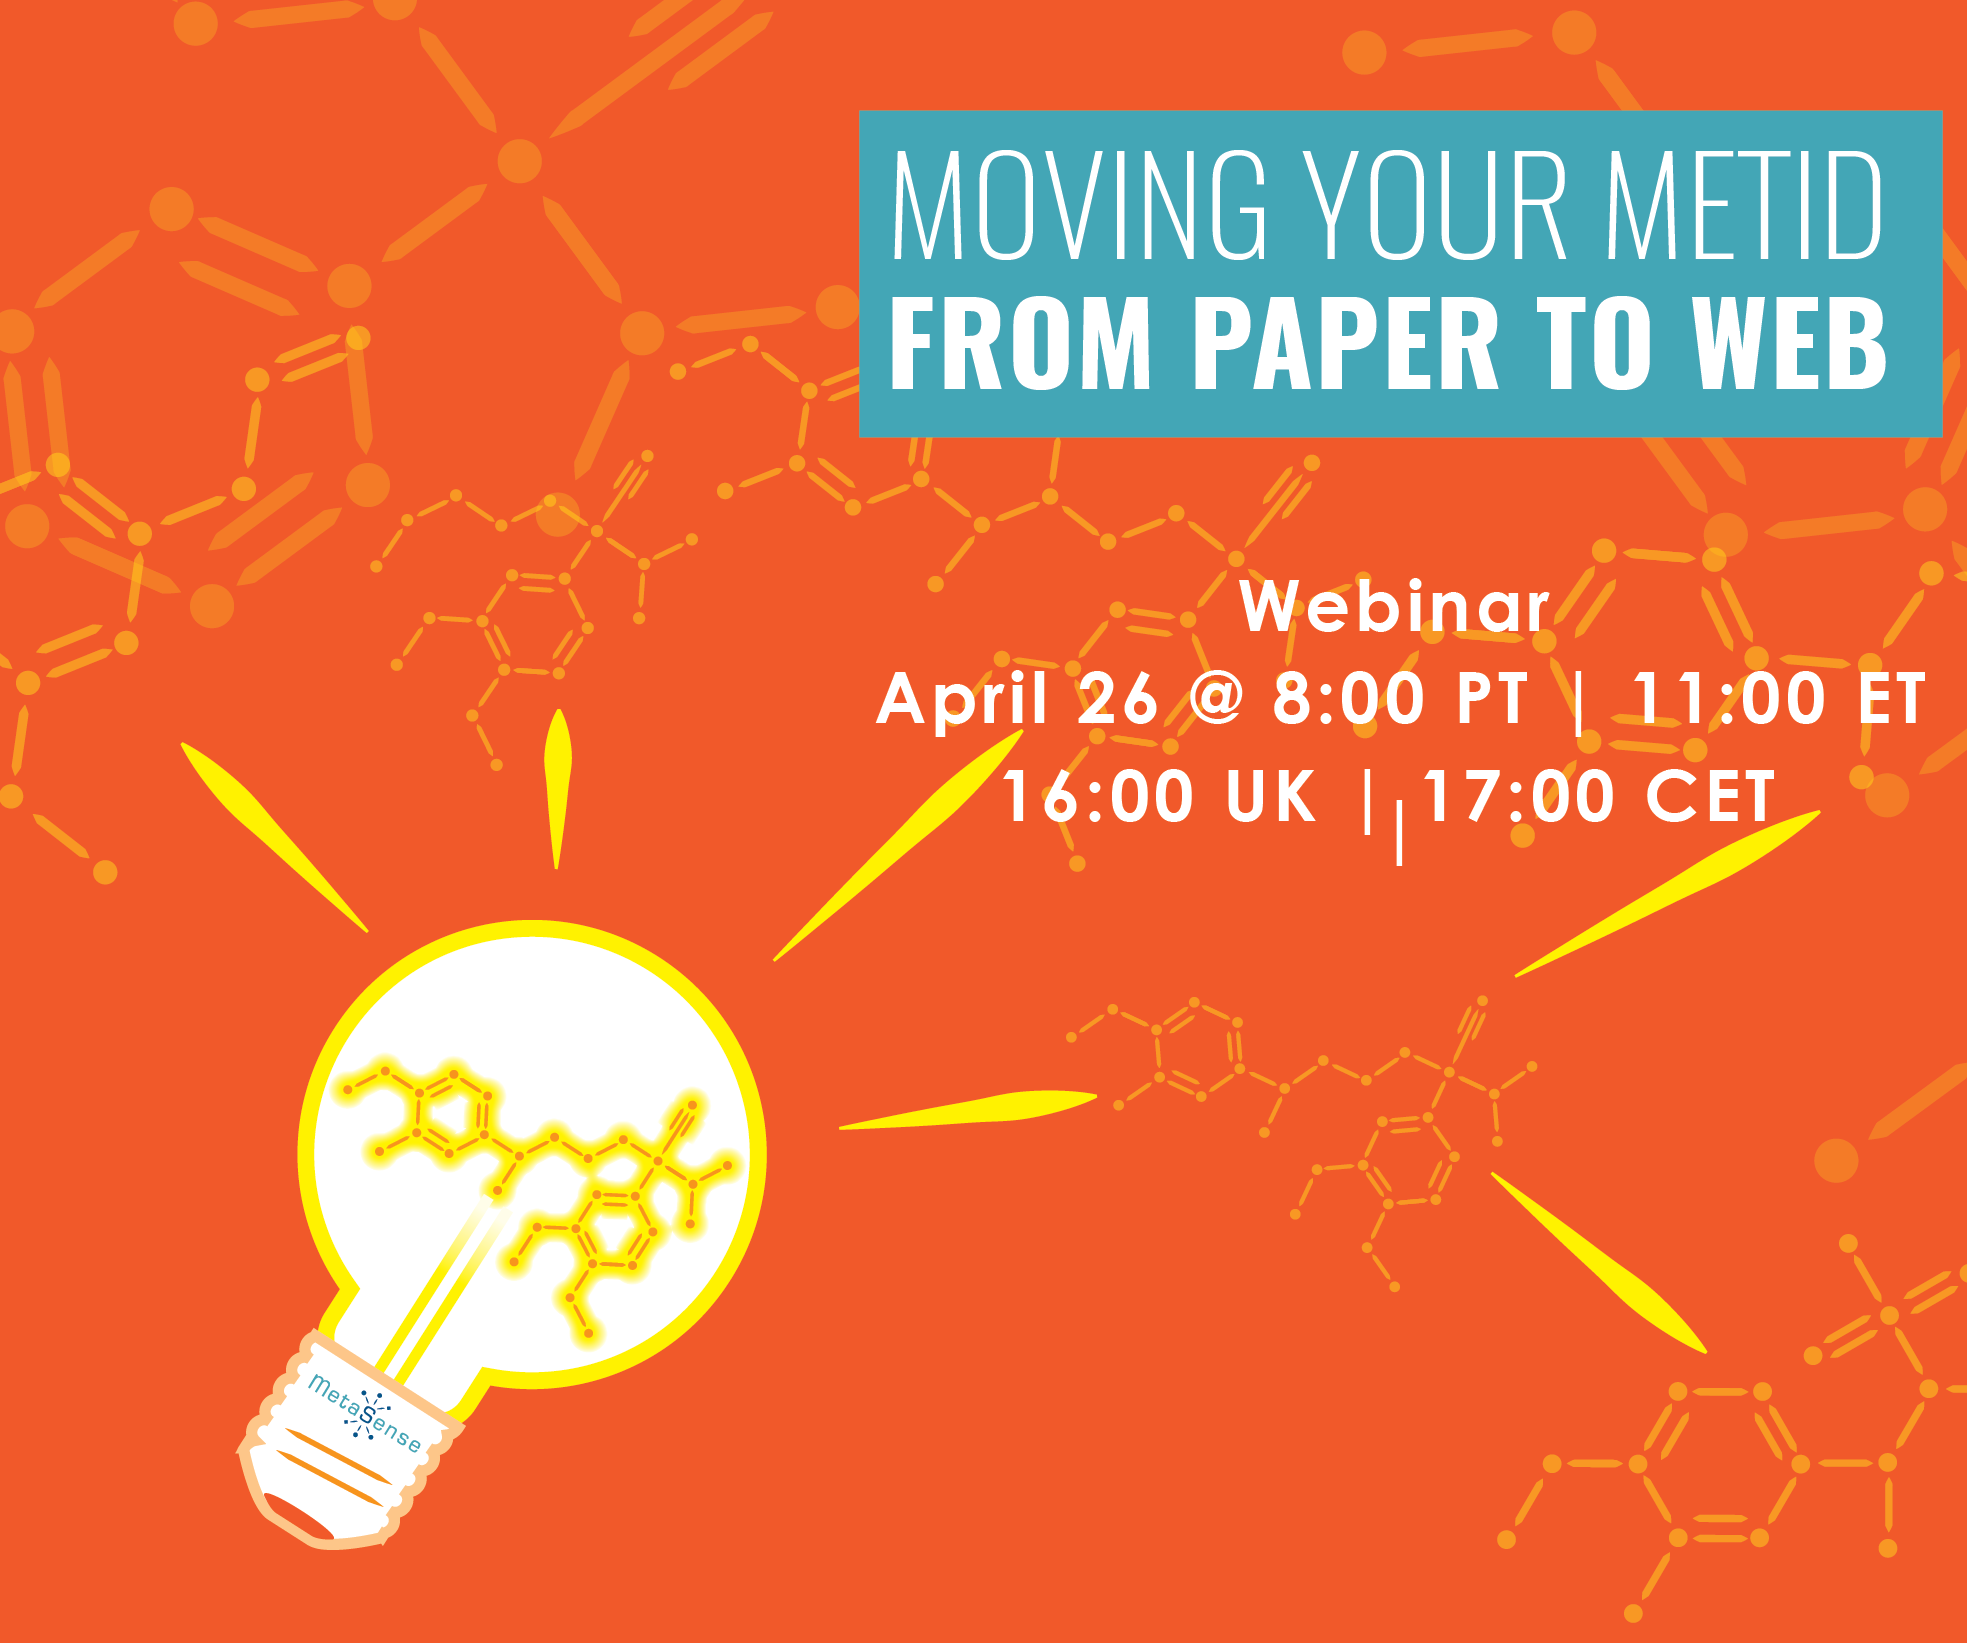 Webinar: Moving Your METID From Paper to Web